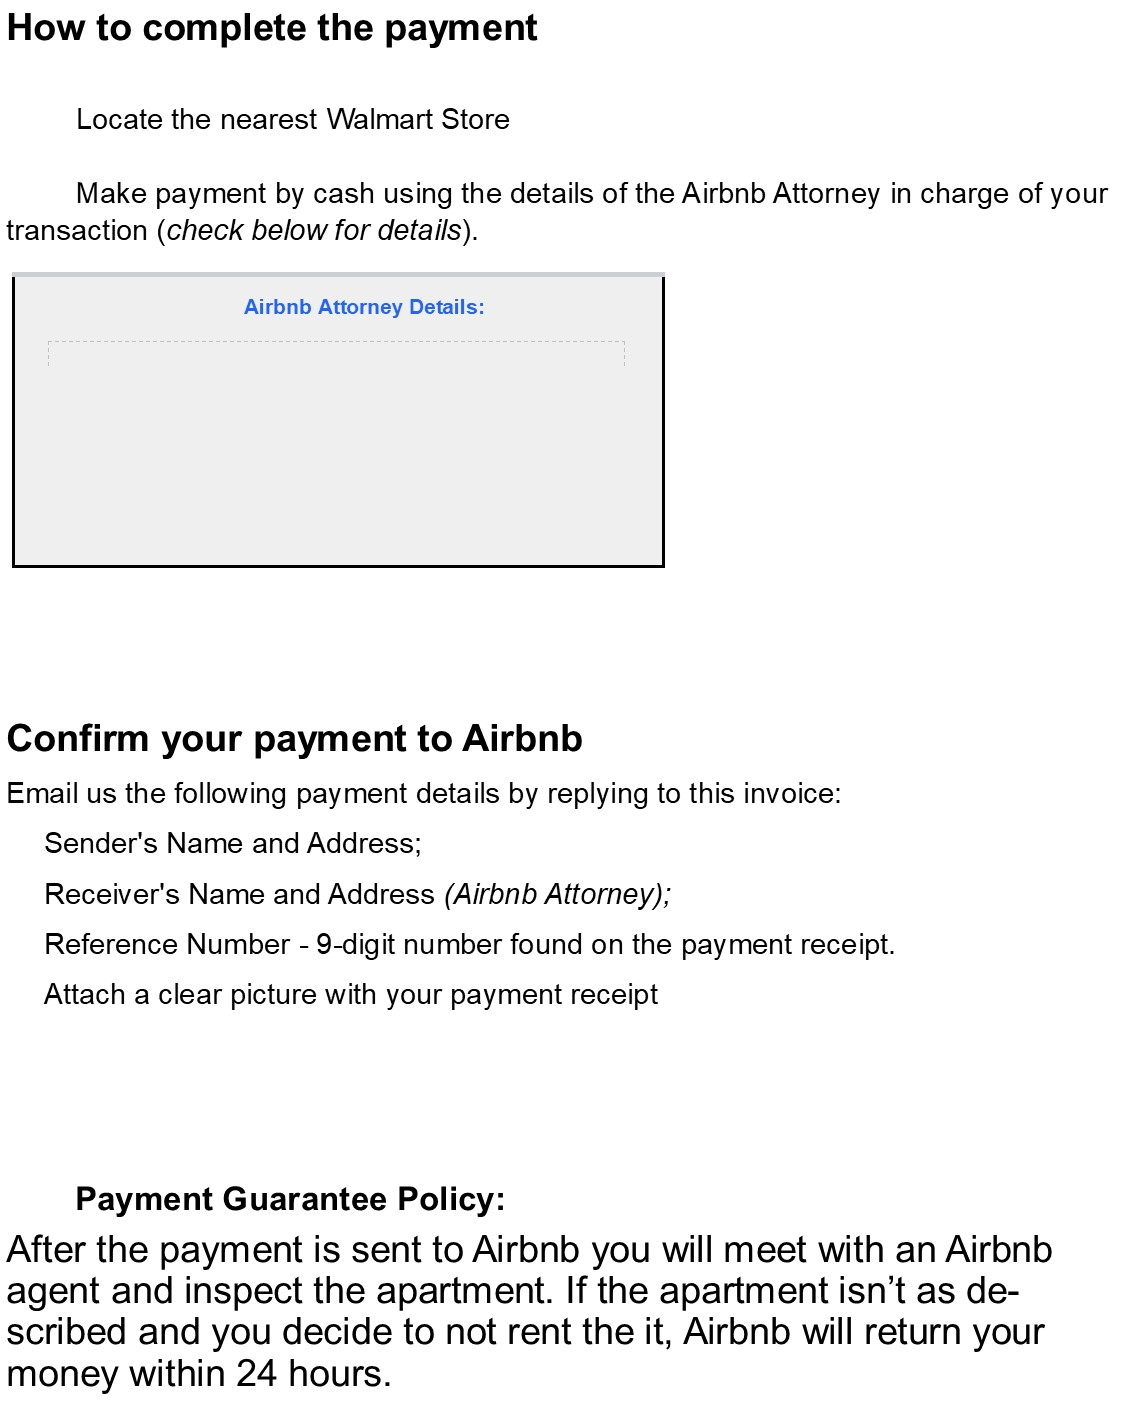 Rental Scam Using Airbnb How Should I Go Forward Airbnb Community